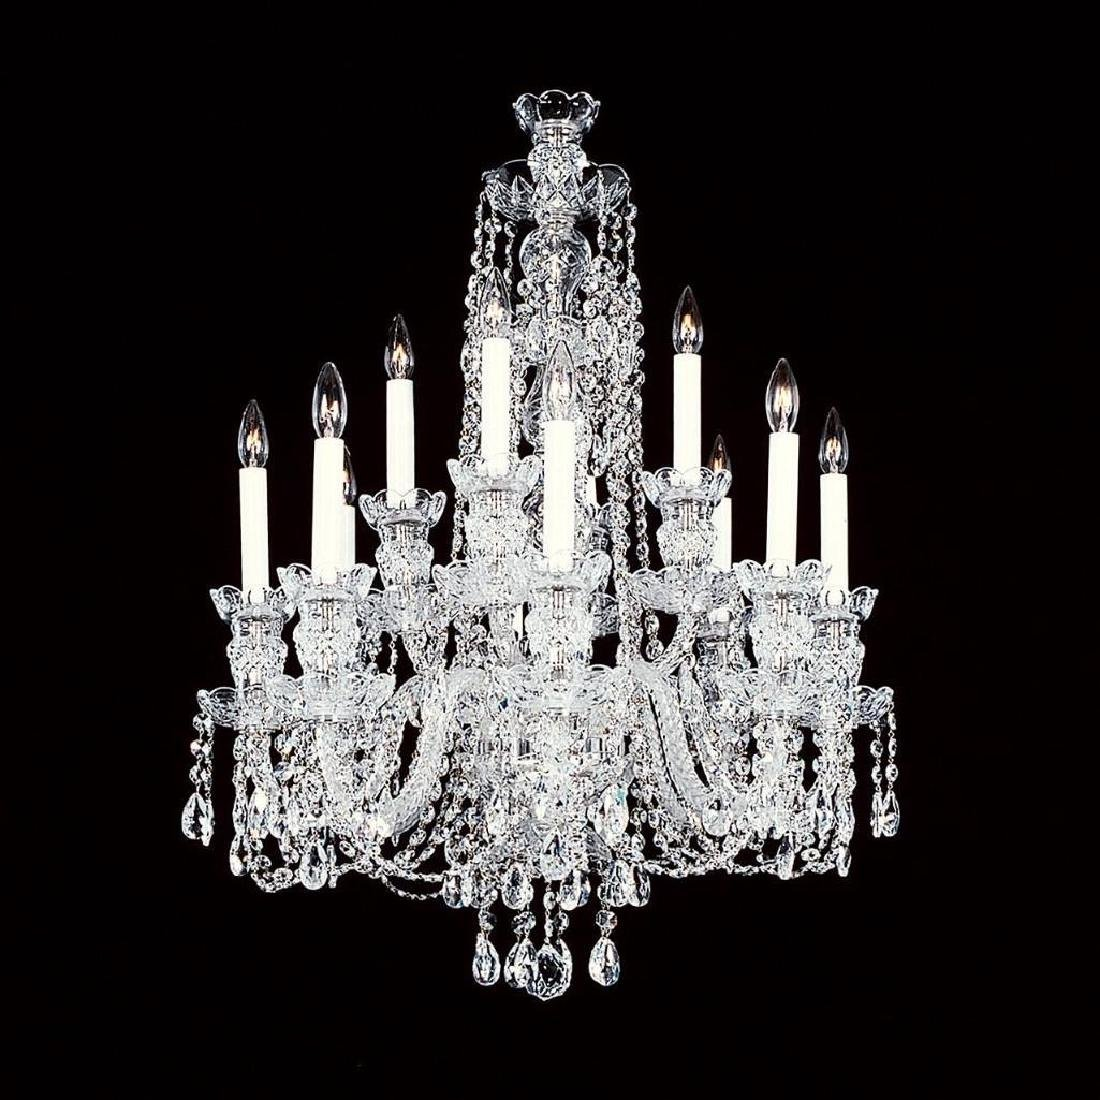 8+4 Small - 12 Light Crystal Chandelier with Swarovski